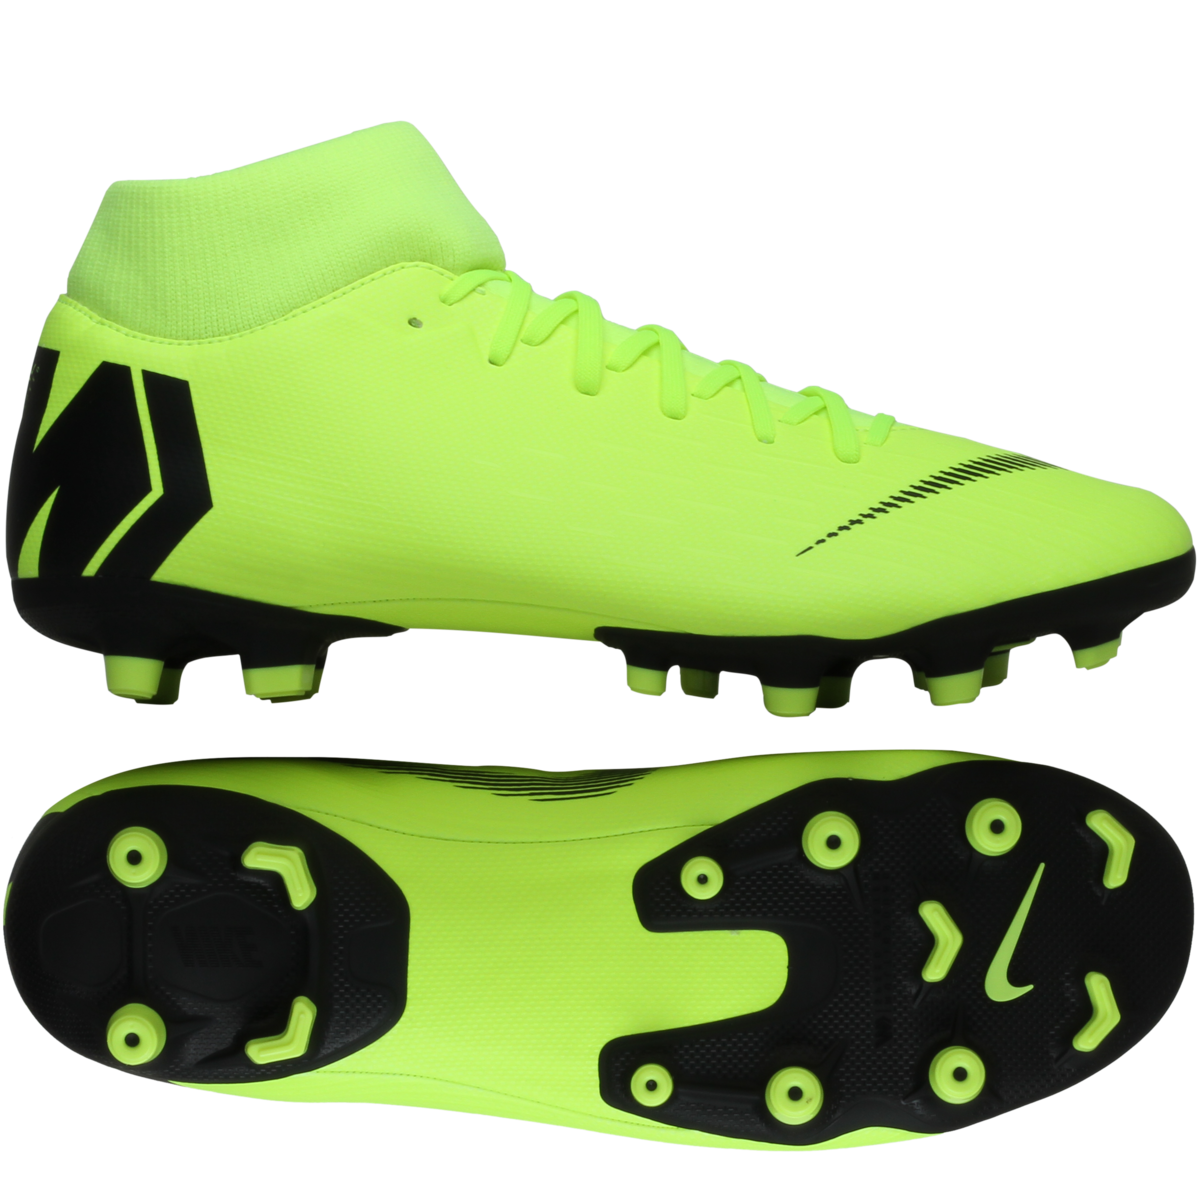 Nike – Mercurial Superfly 6 Academy FG/MG 'Always Forward' – Neon